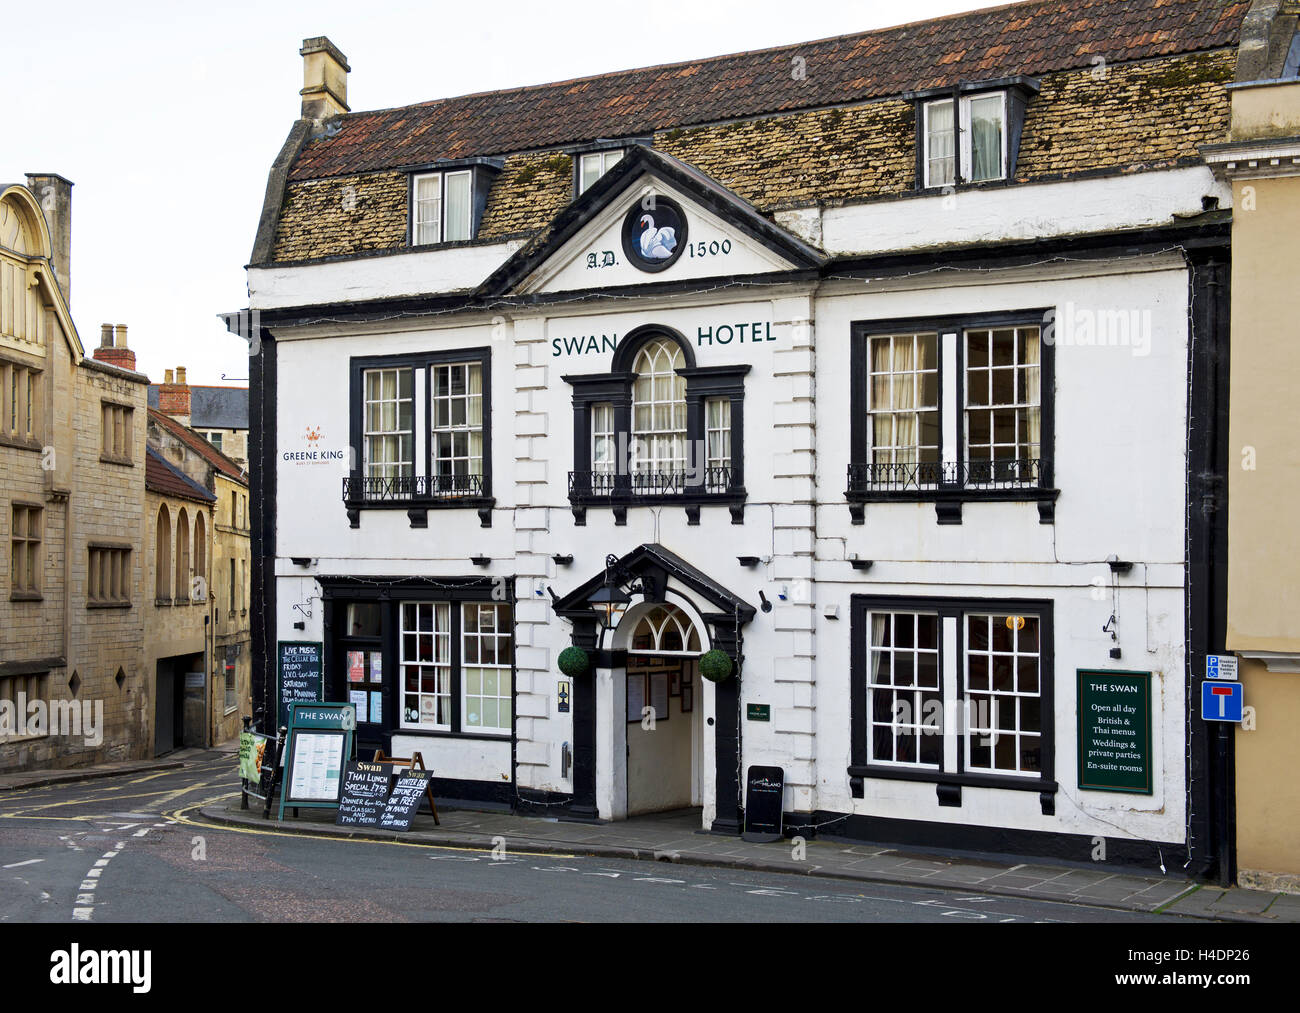 The Swan Hotel, Bradford-on-Avon, Wiltshire, England UK - Stock Image